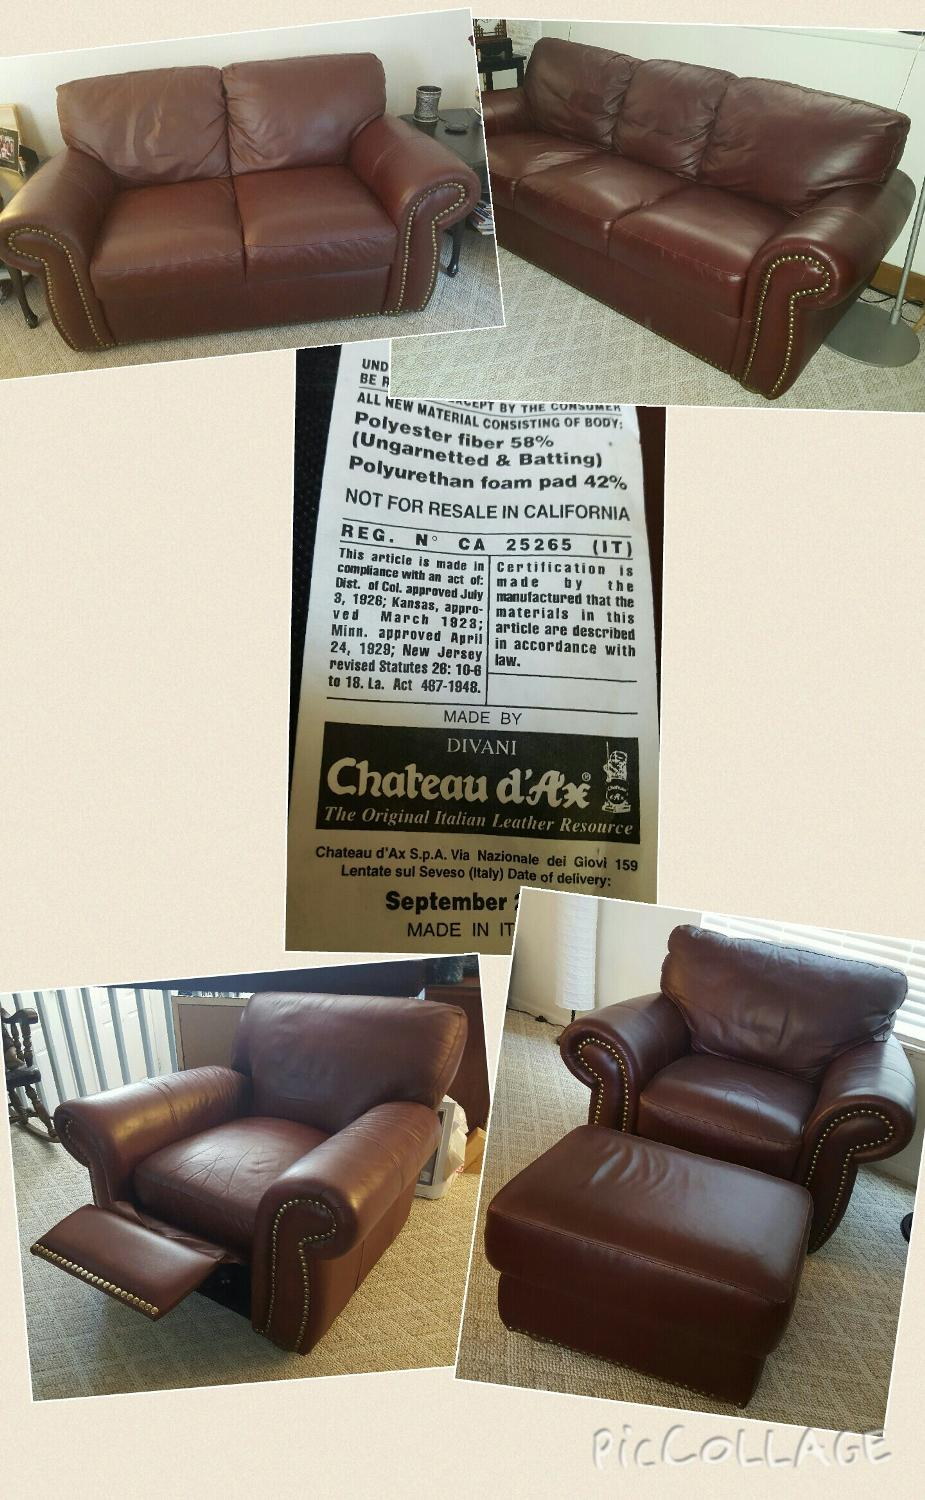 Divani chateau d ax leather sofa - Find More Divani Chateau D Ax Leather Furniture For Sale At Up To 90 Off Parker Co